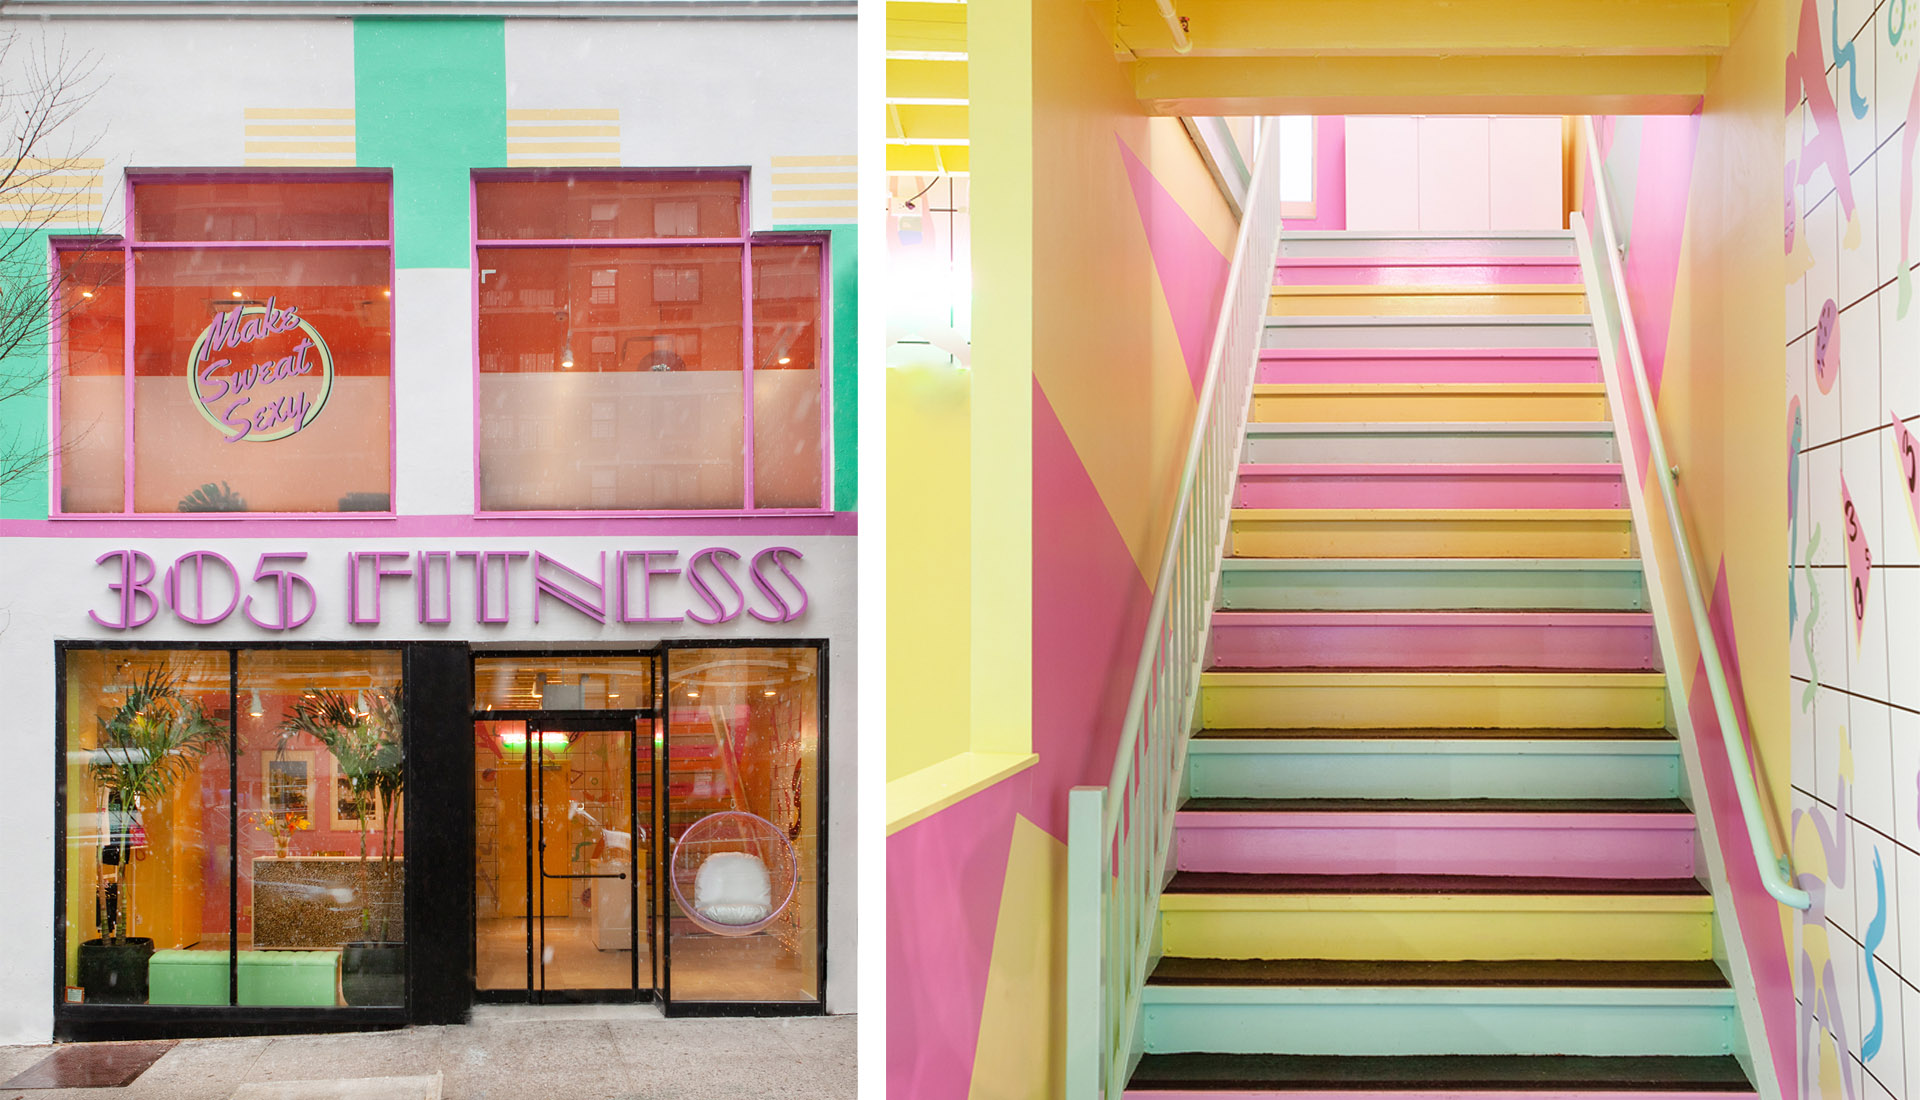 Sasha Bikof - 305 Fitness facade and staircase